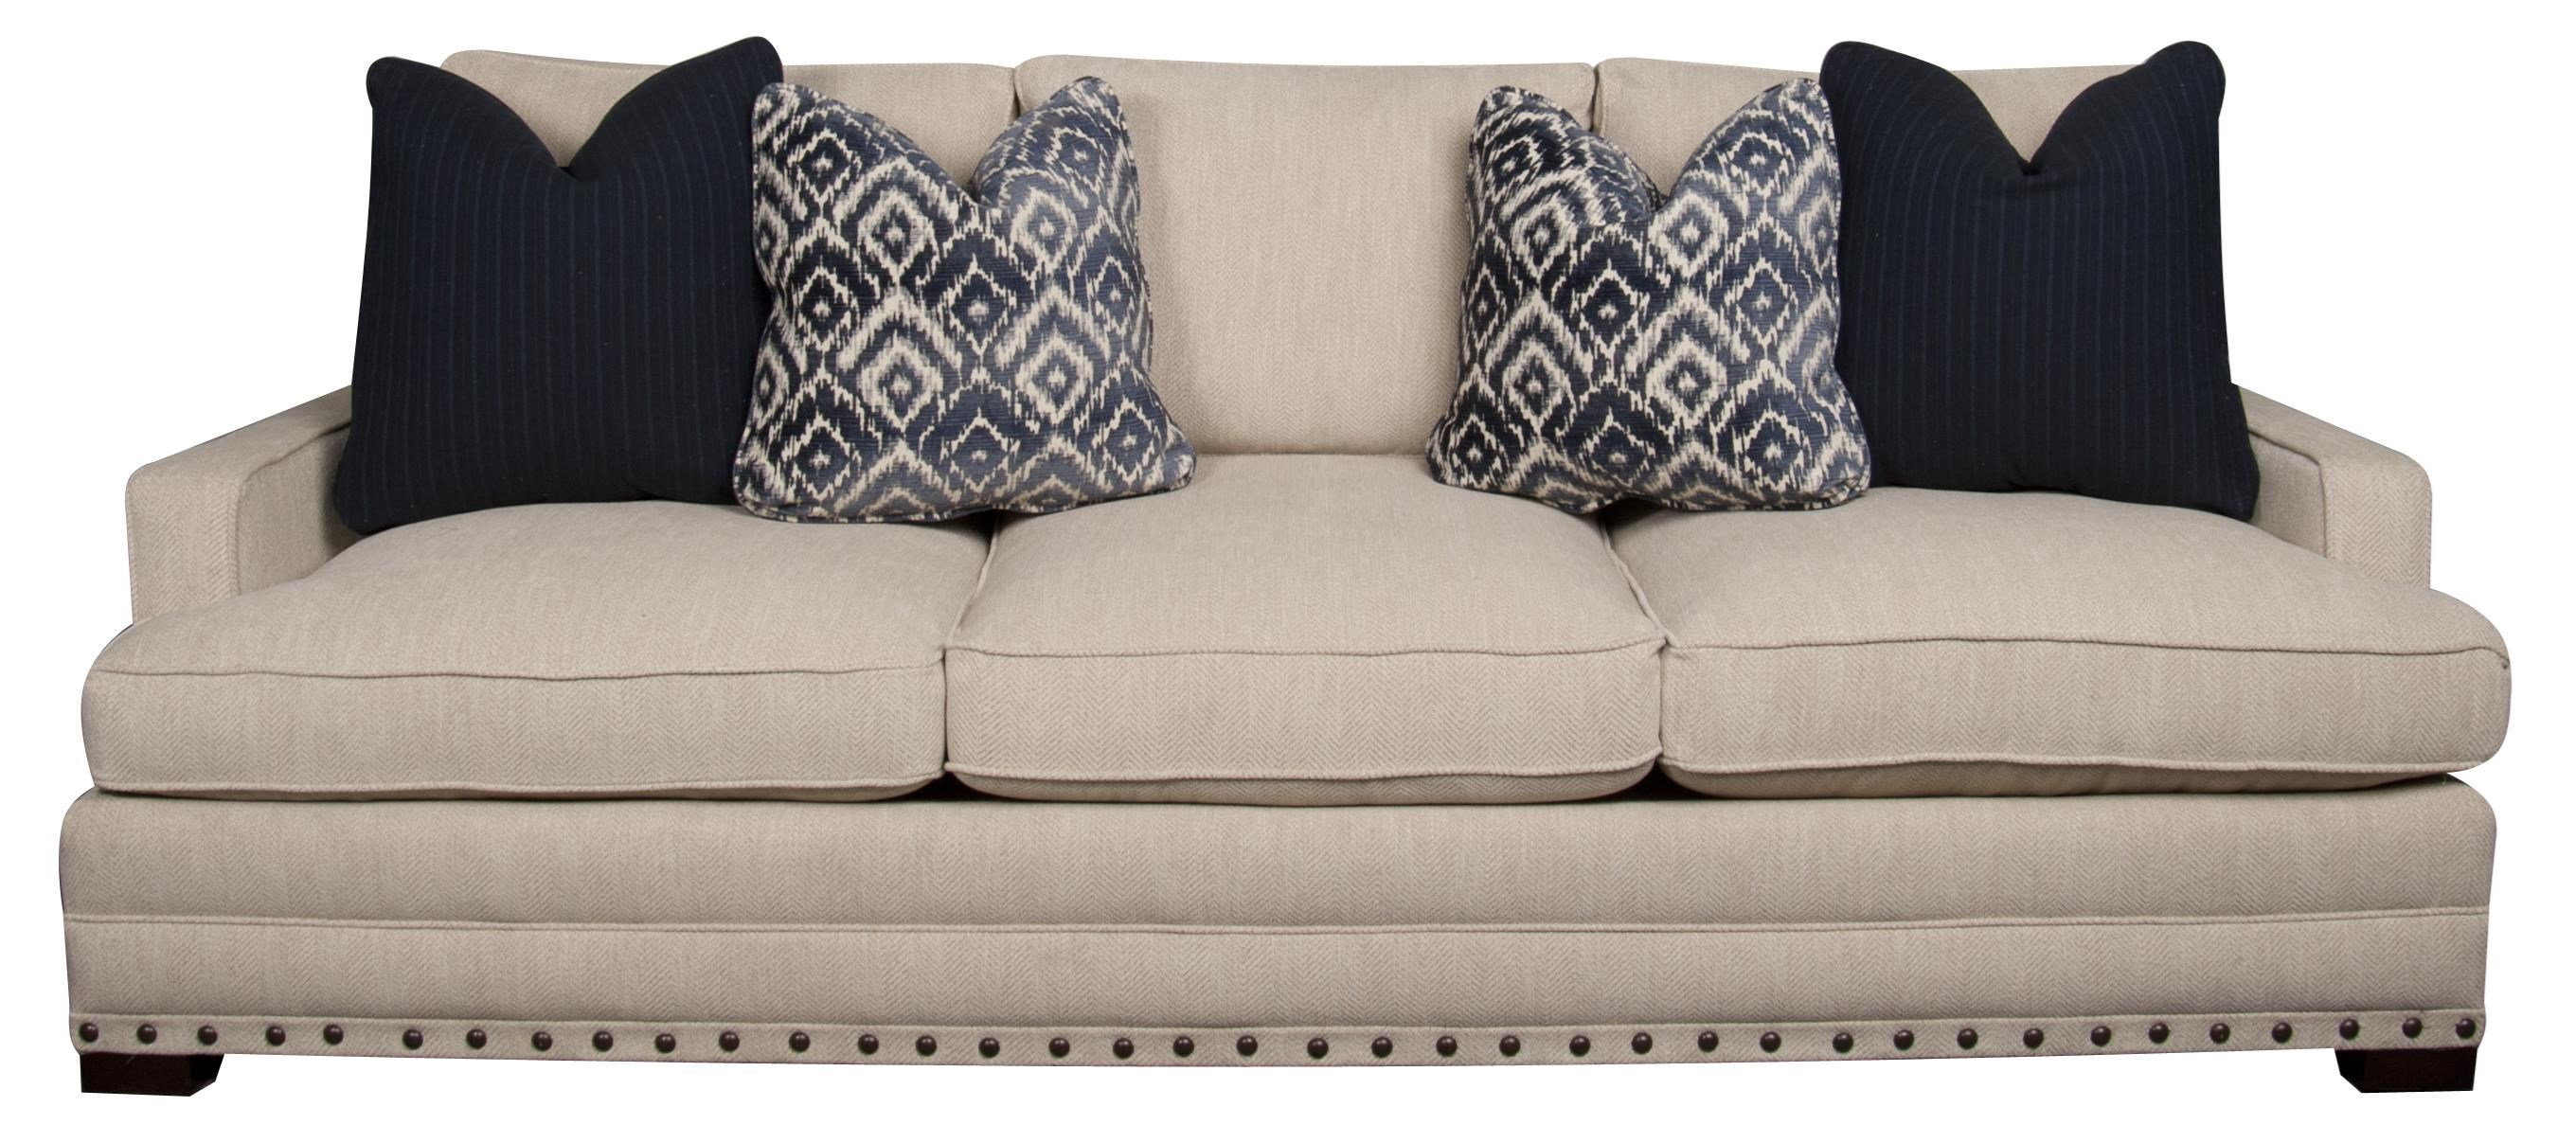 Bernhardt Morris Home Furnishings Cantor Sofa - Item Number: 652400951